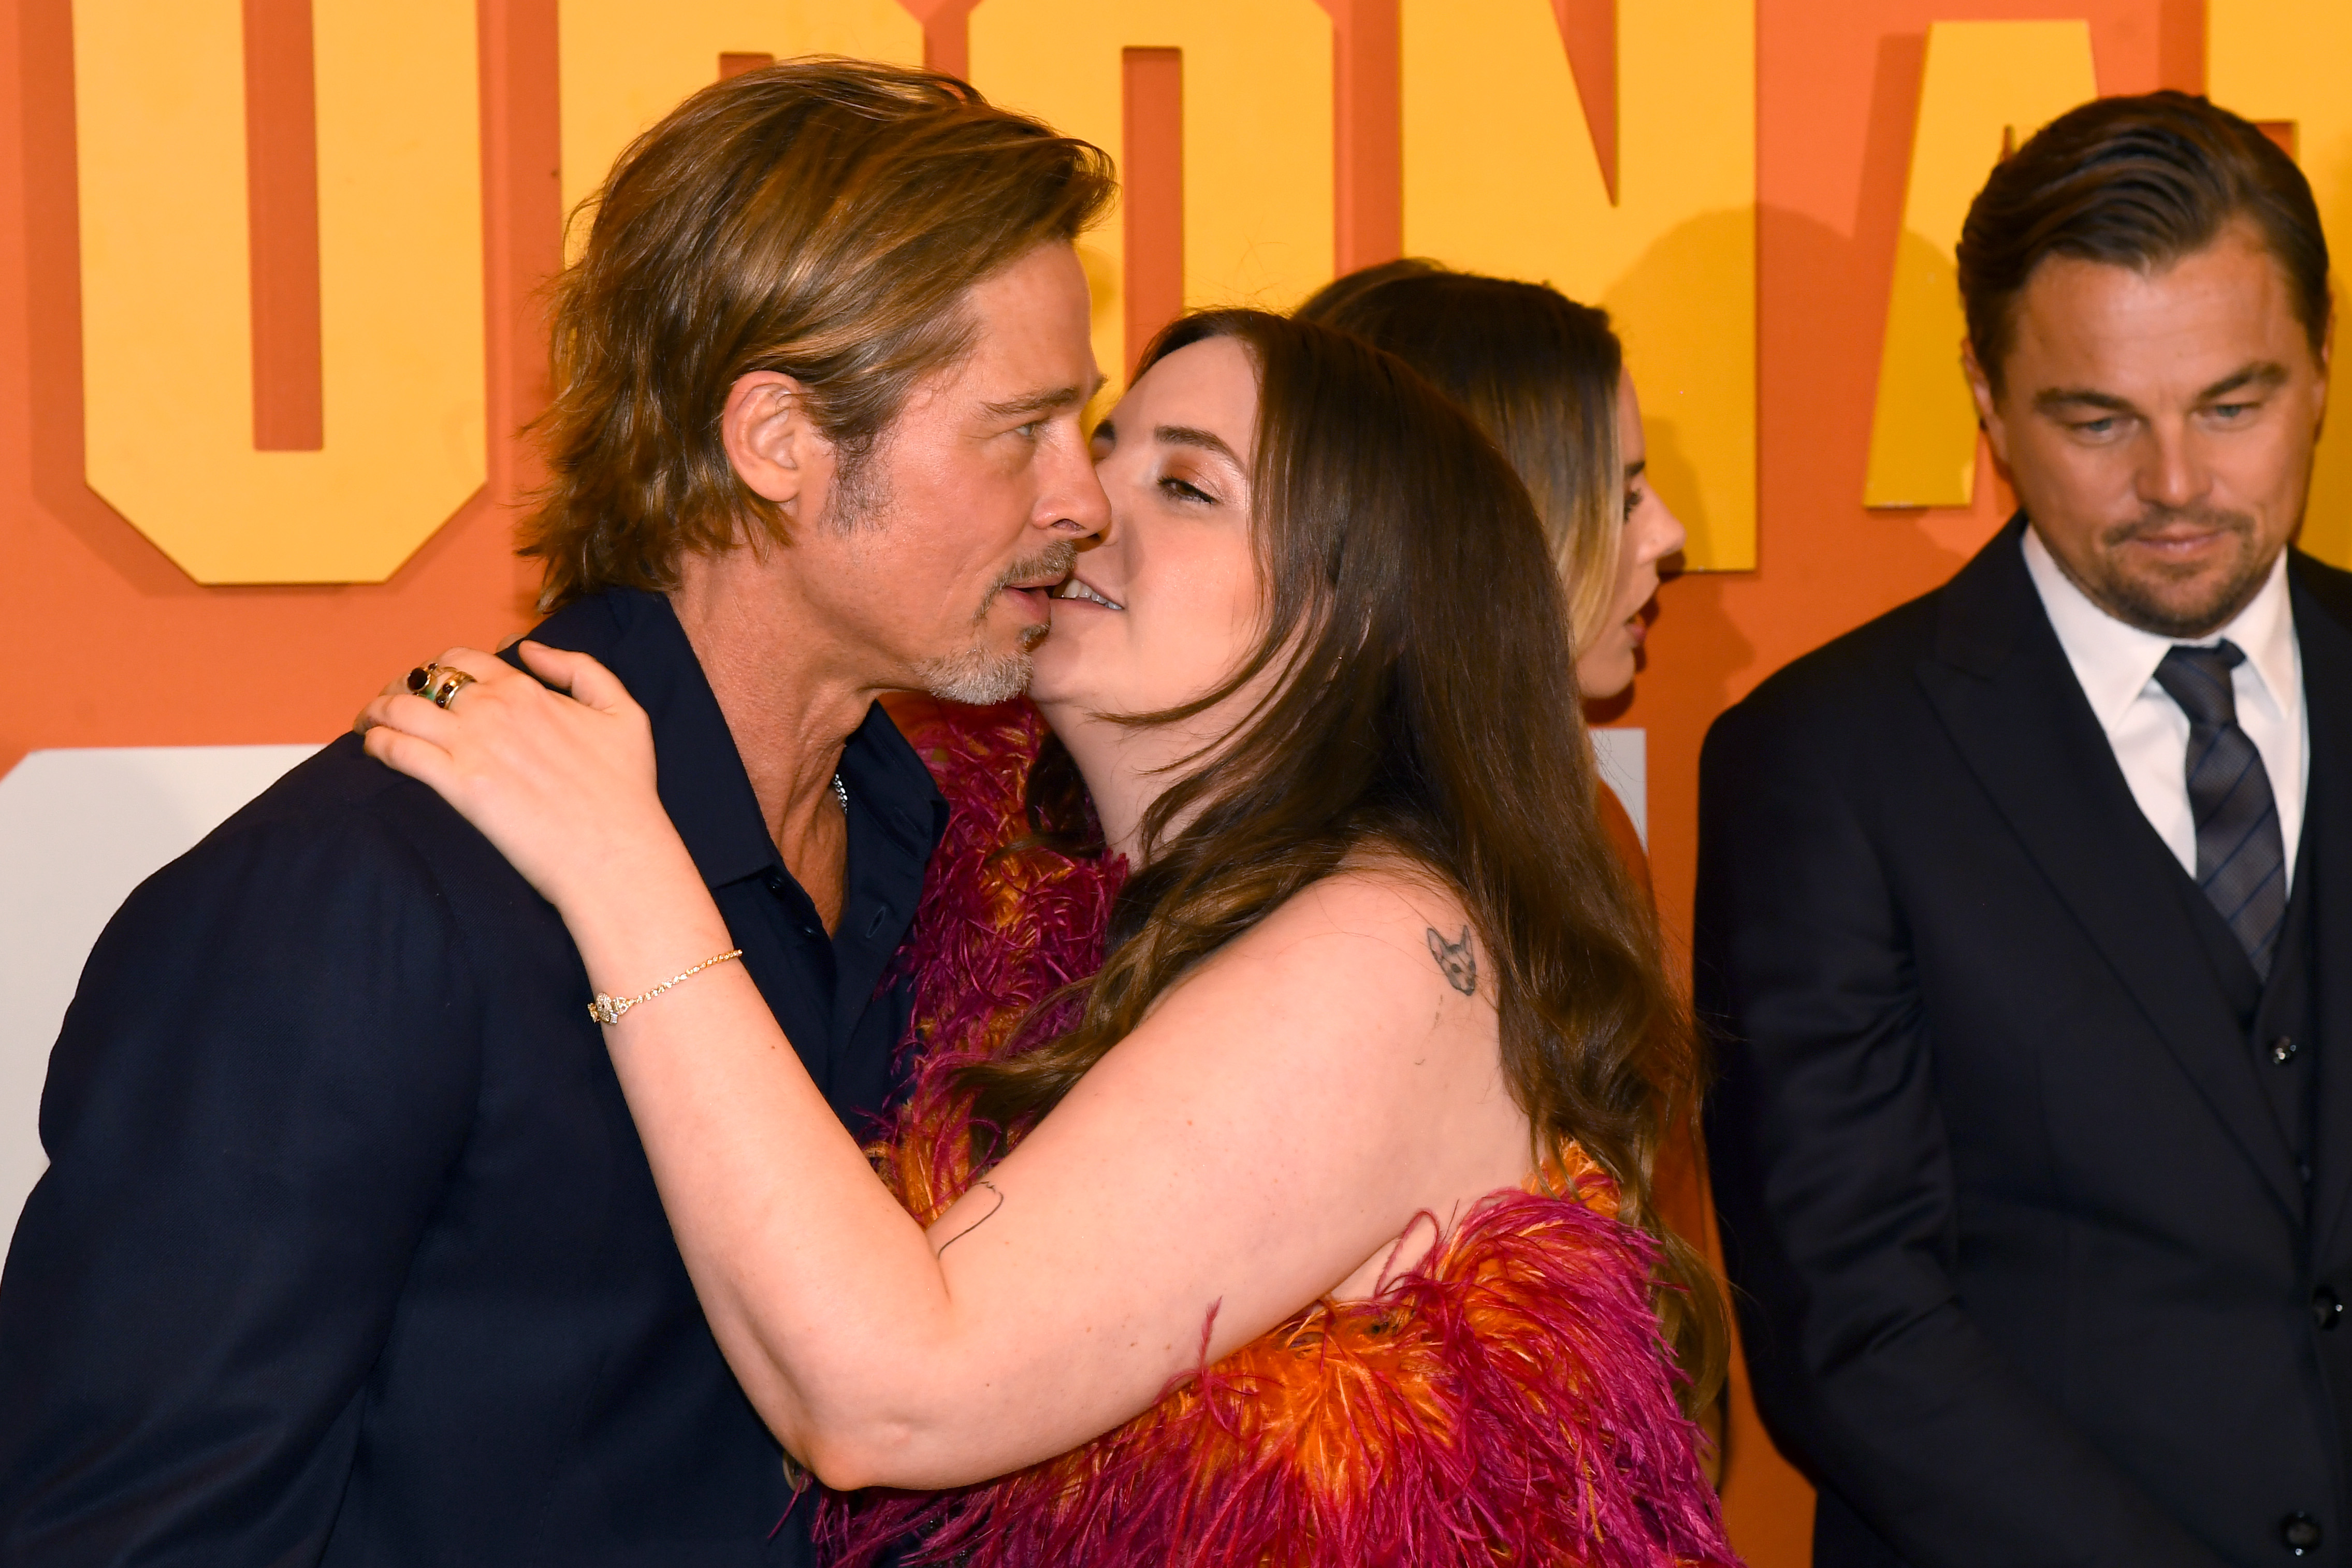 """Brad Pitt and Lena Dunham attend the """"Once Upon a Time... in Hollywood""""  UK Premiere at Odeon Luxe Leicester Square on July 30, 2019 in London, England. (Photo by Dave J Hogan/Getty Images)"""